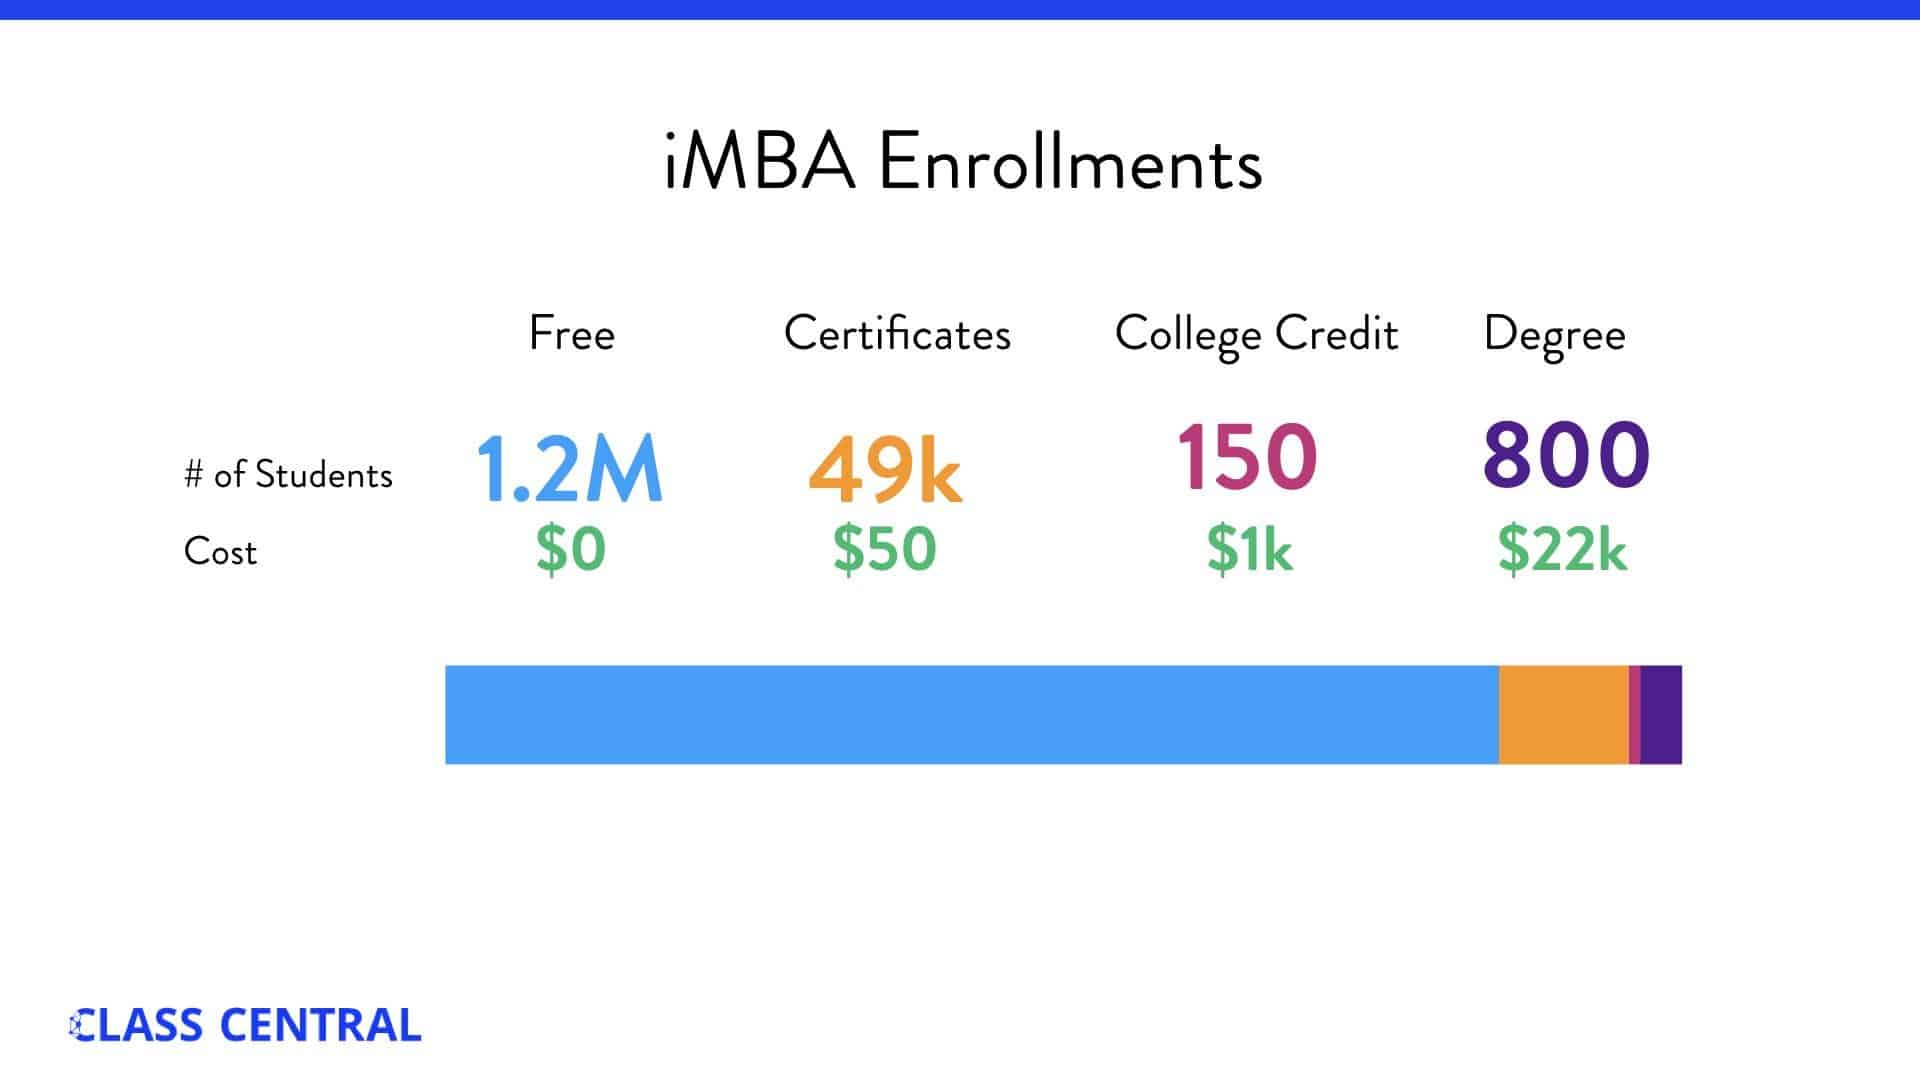 iMBA enrollments infographic